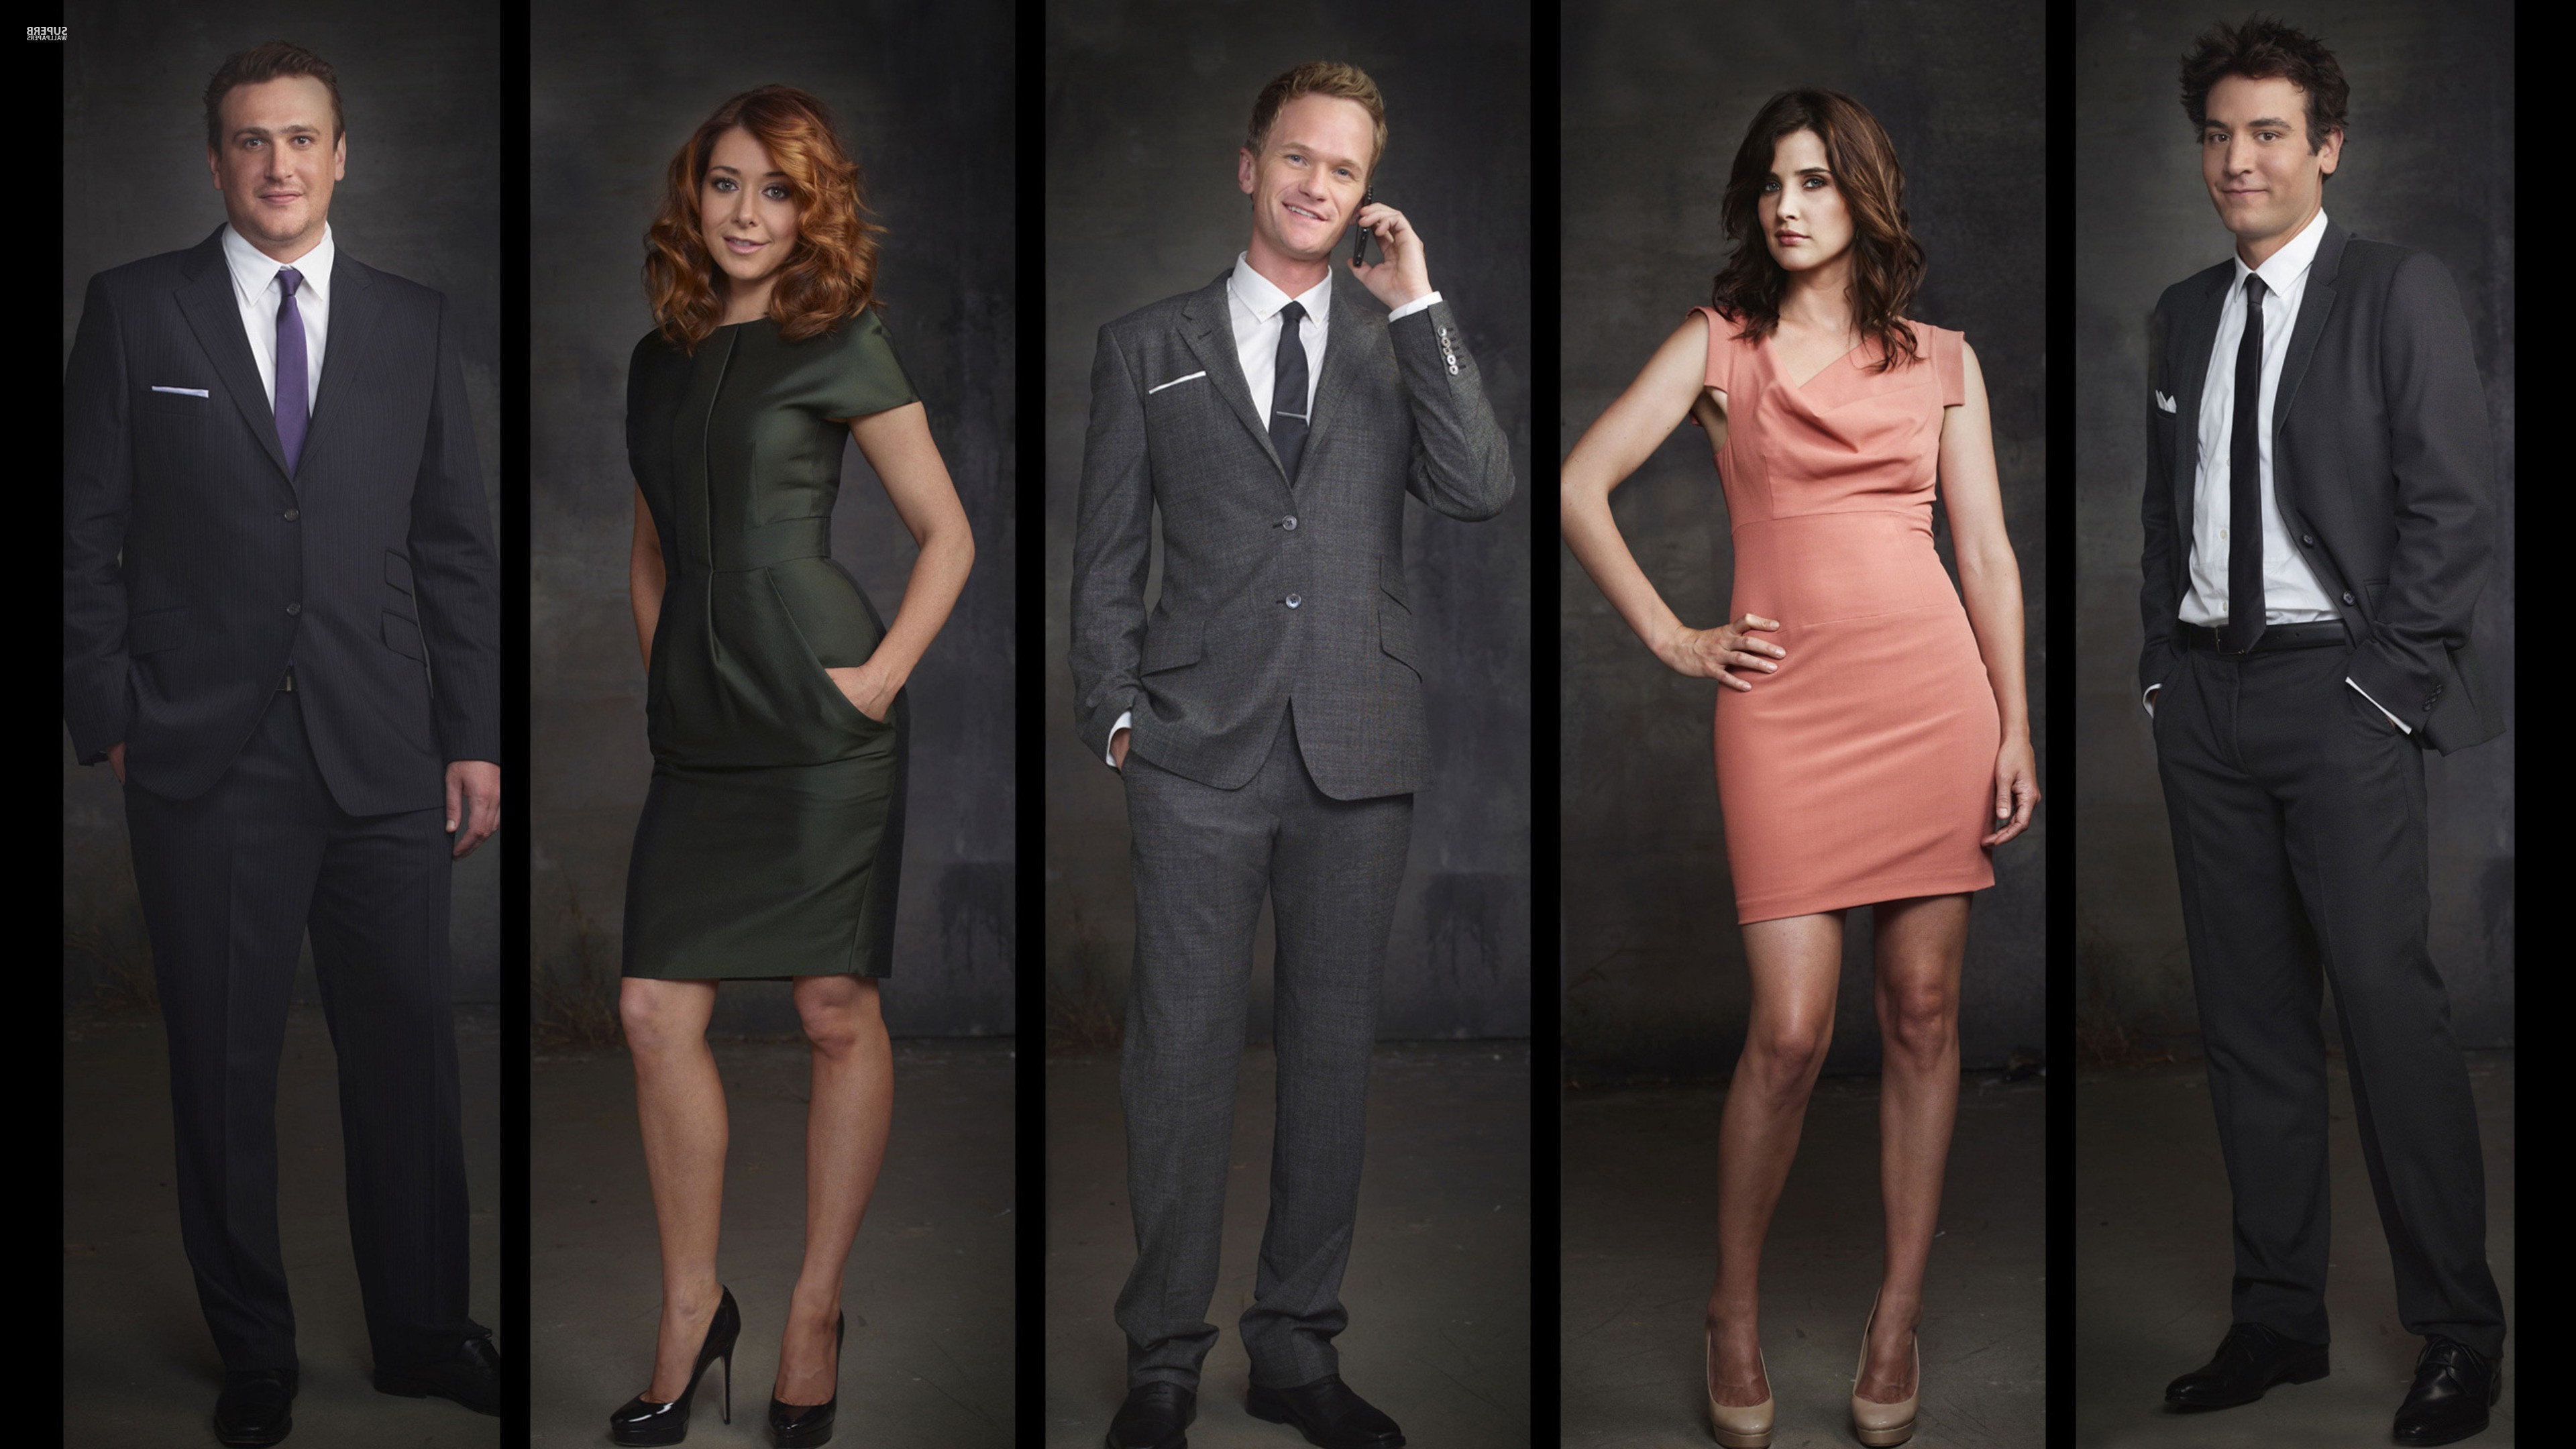 3840x2160 How I Met Your Mother, Neil Patrick Harris, Alyson Hannigan, Cobie Smulders  Wallpapers HD / Desktop and Mobile Backgrounds